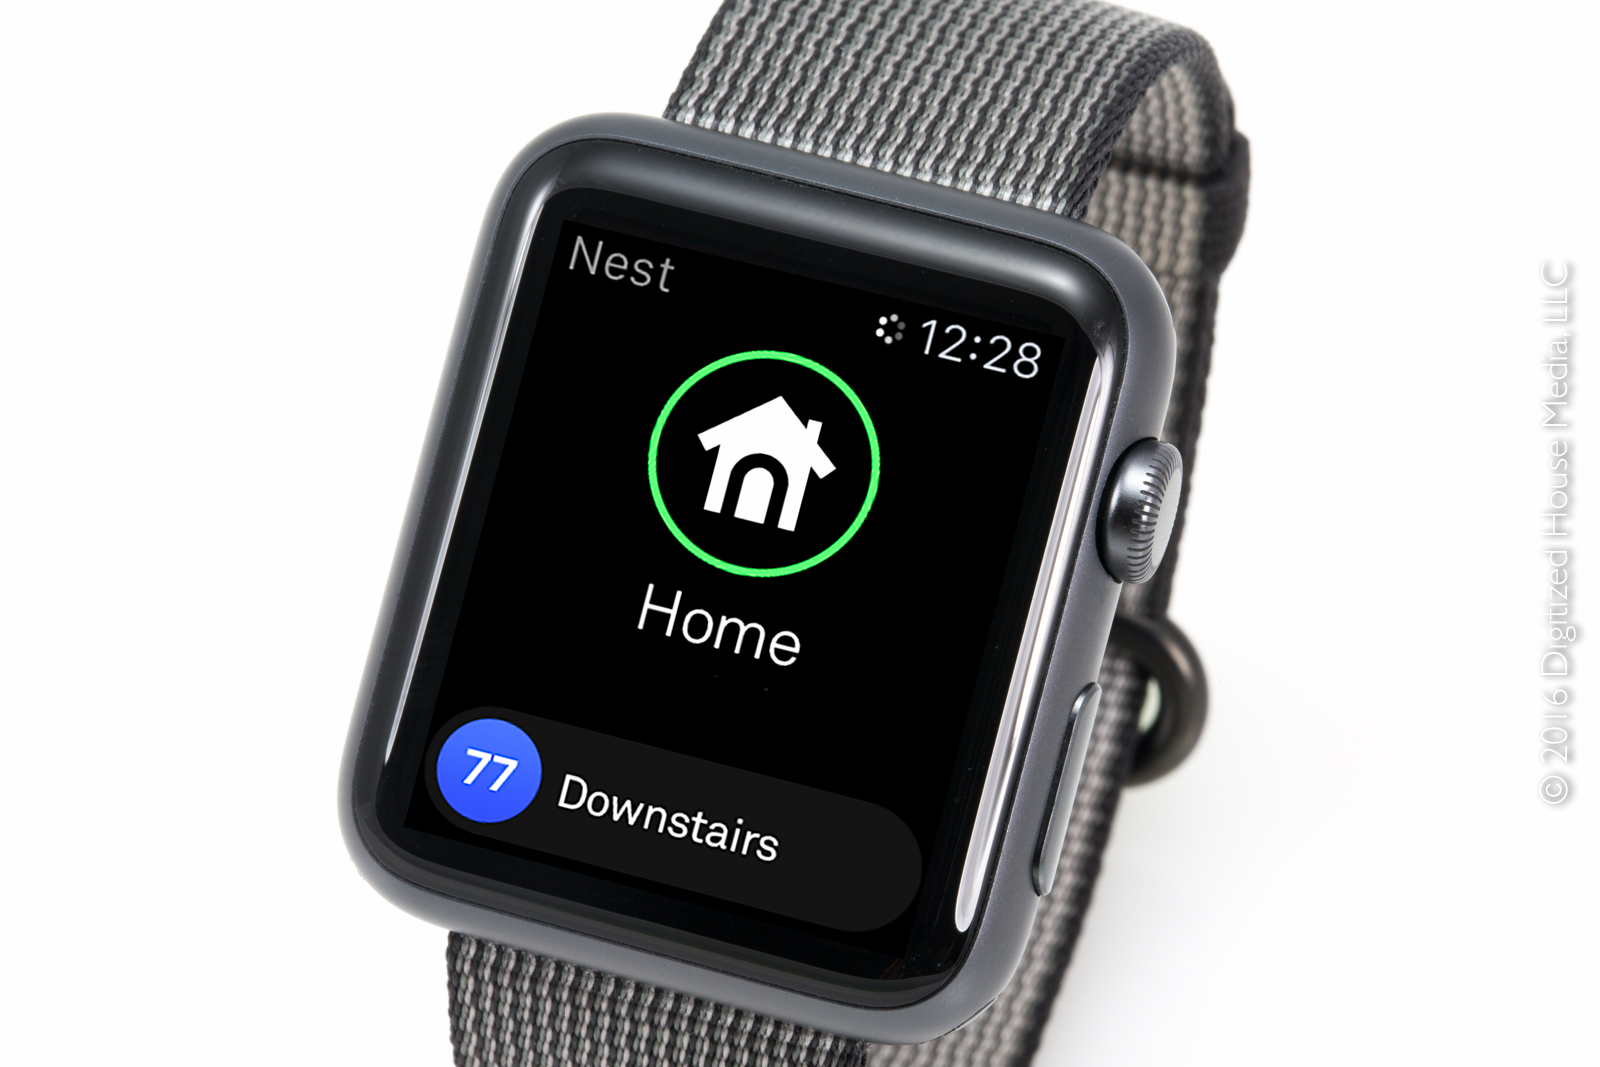 Nest app embraces Apple Watch